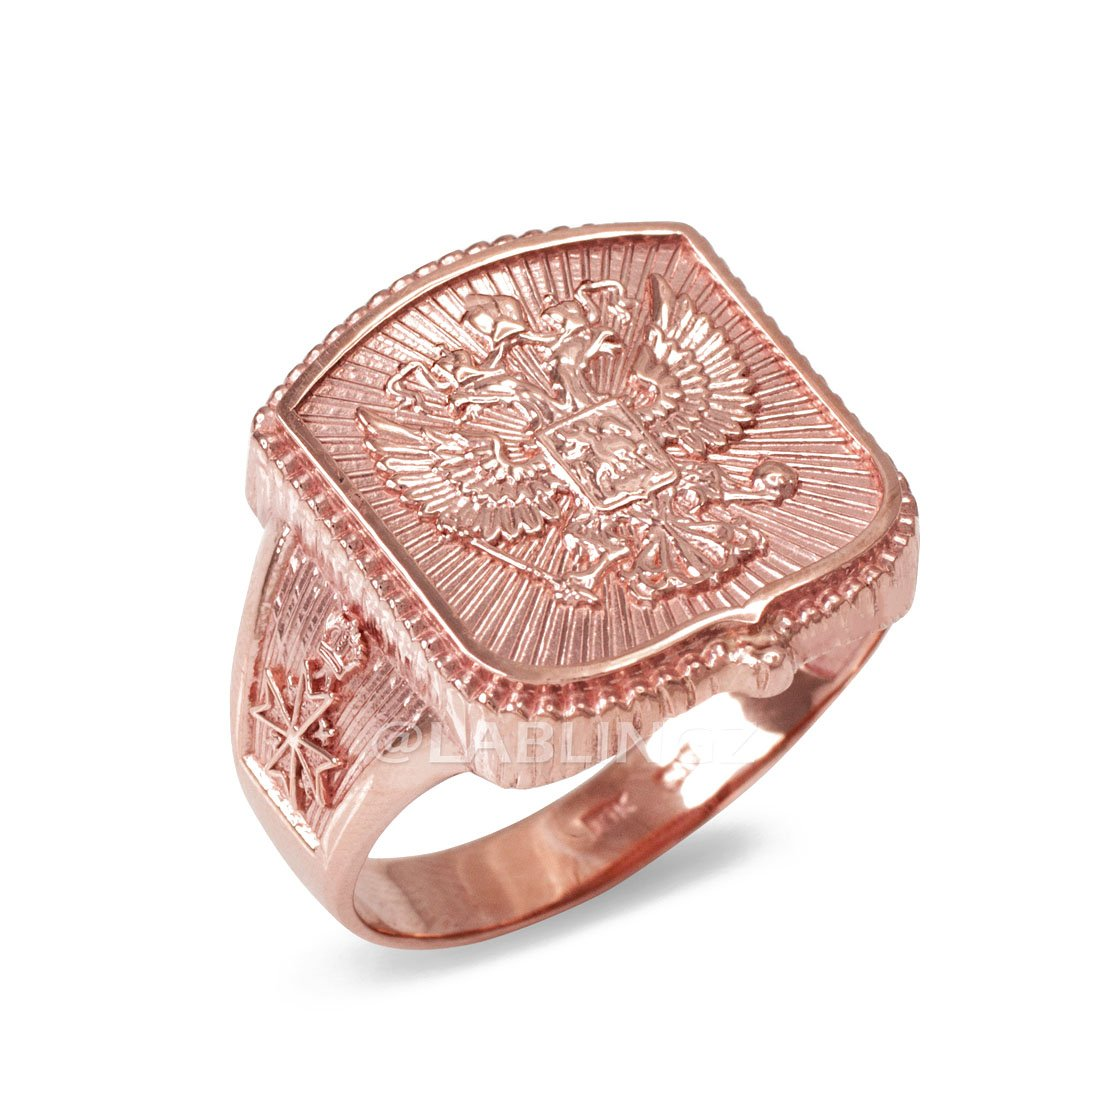 14K Rose Gold Russian Imperial Crest Mens Orthodox Cross Ring|Amazon.com